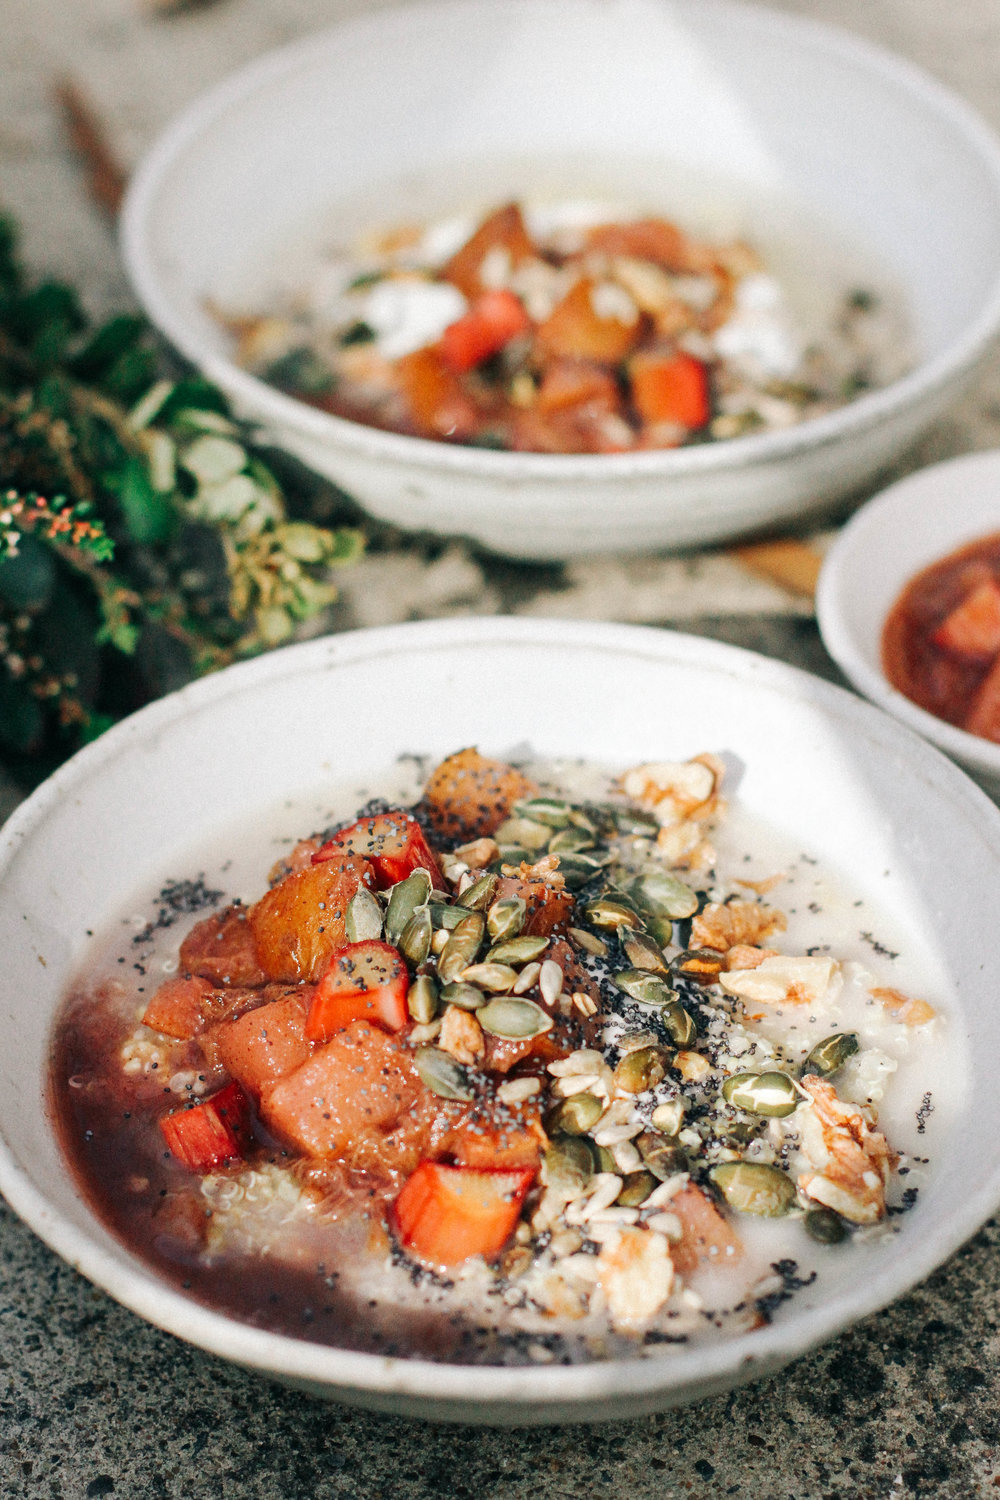 Rhubarb Porridge⎜The Botanical Kitchen